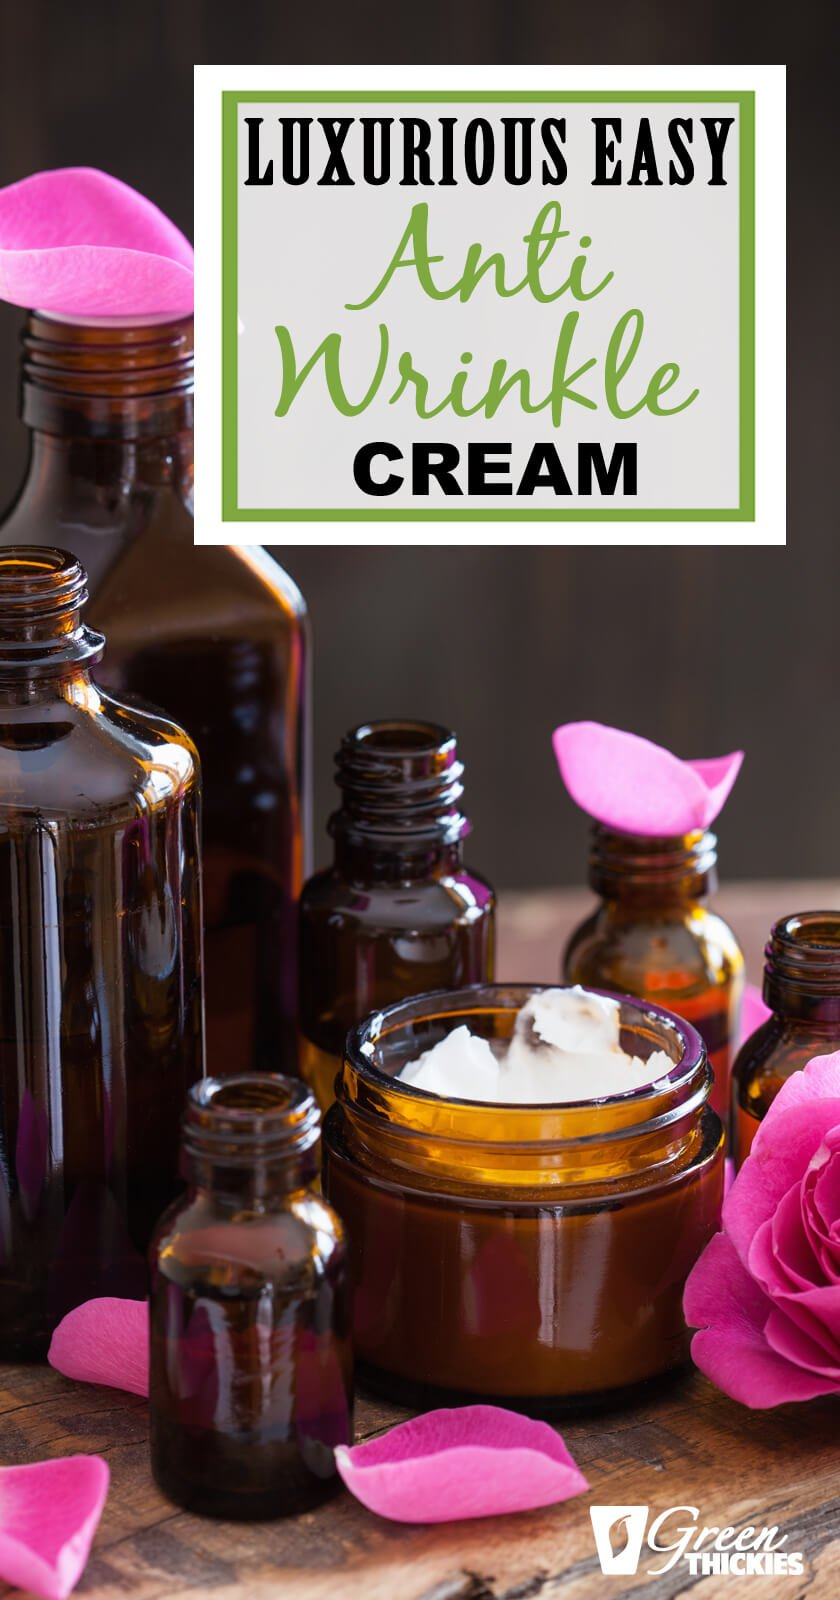 This homemade anti-wrinkle cream is better than any store bought cream you can find